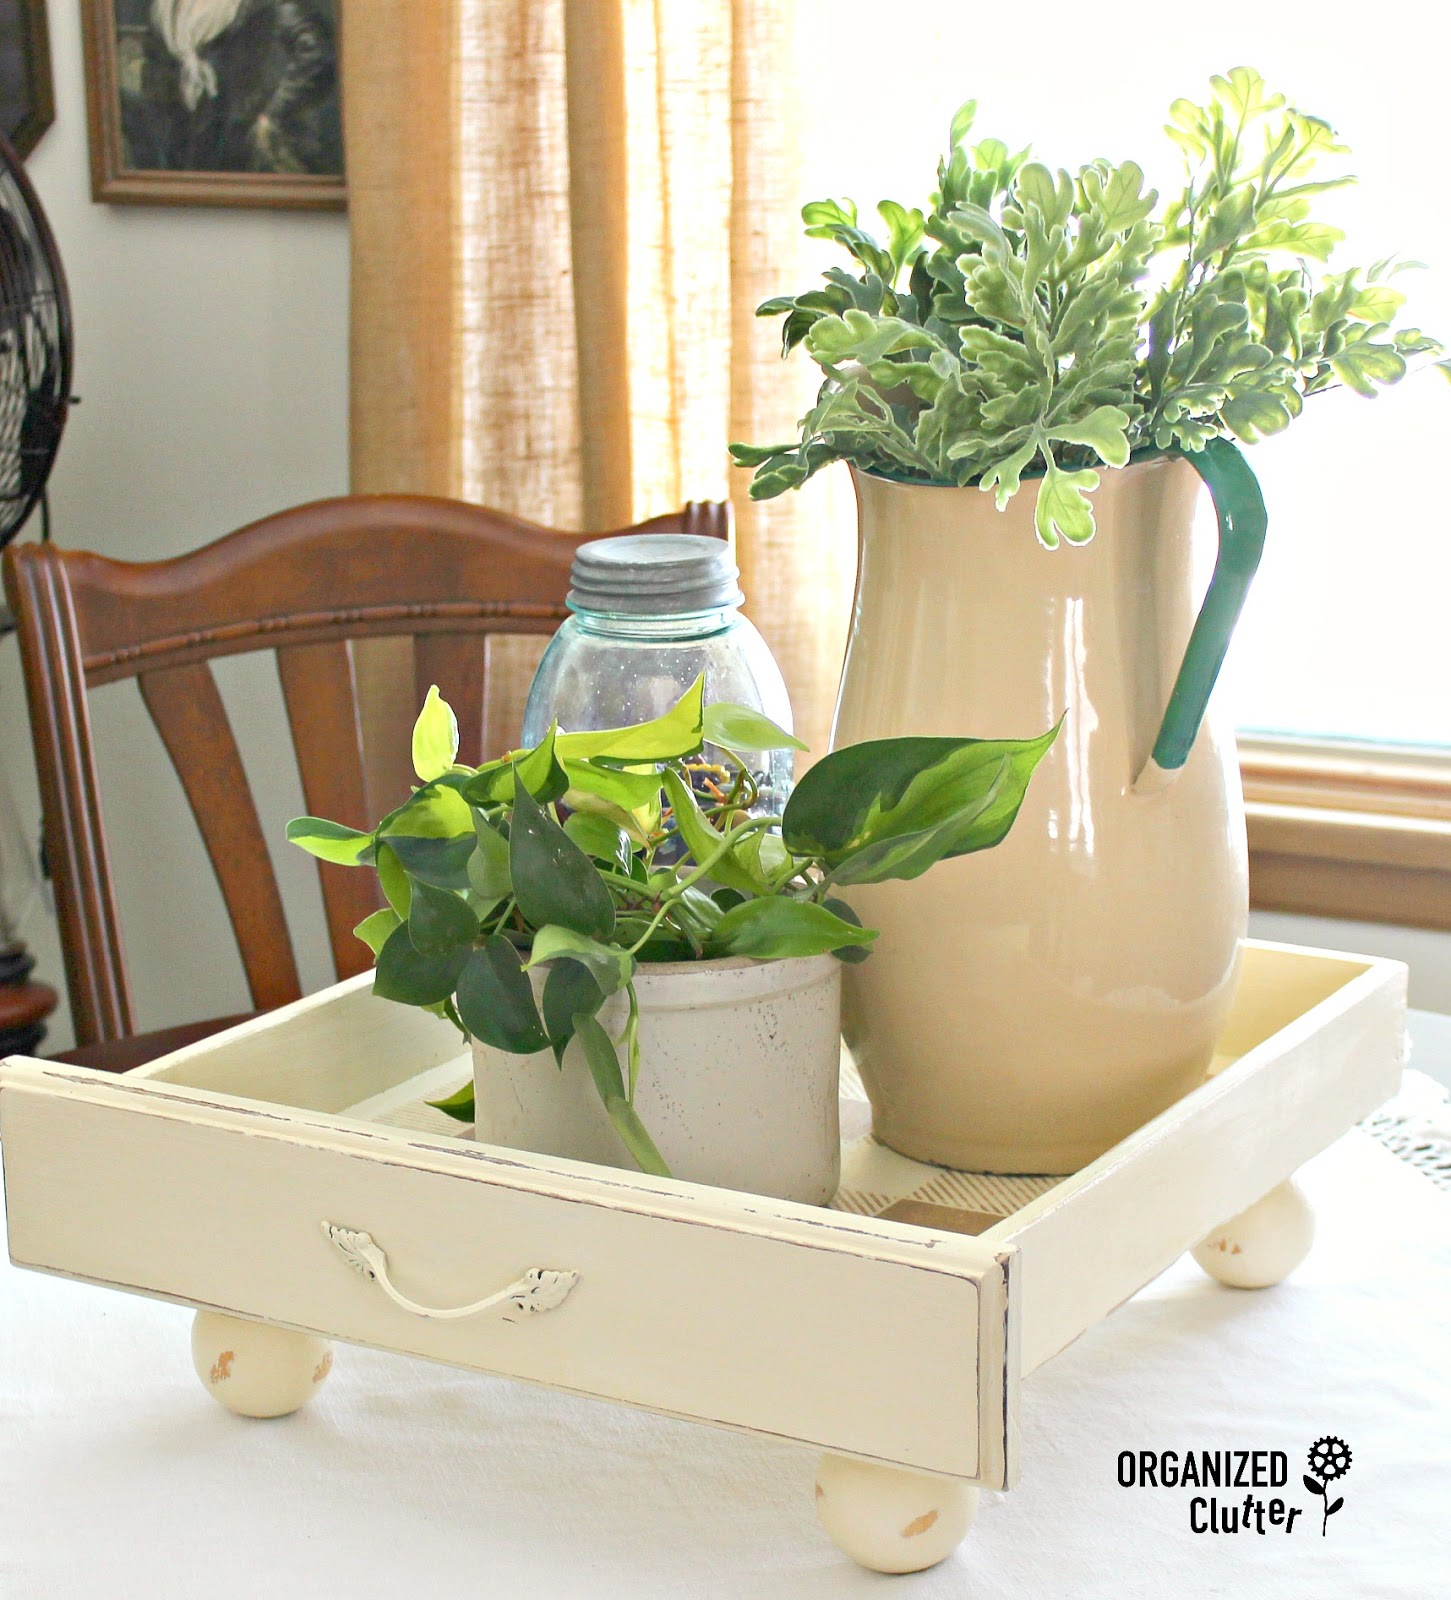 Repurposed drawer turned raised plant tray by Organized Clutter, featured on Funky Junk Interiors